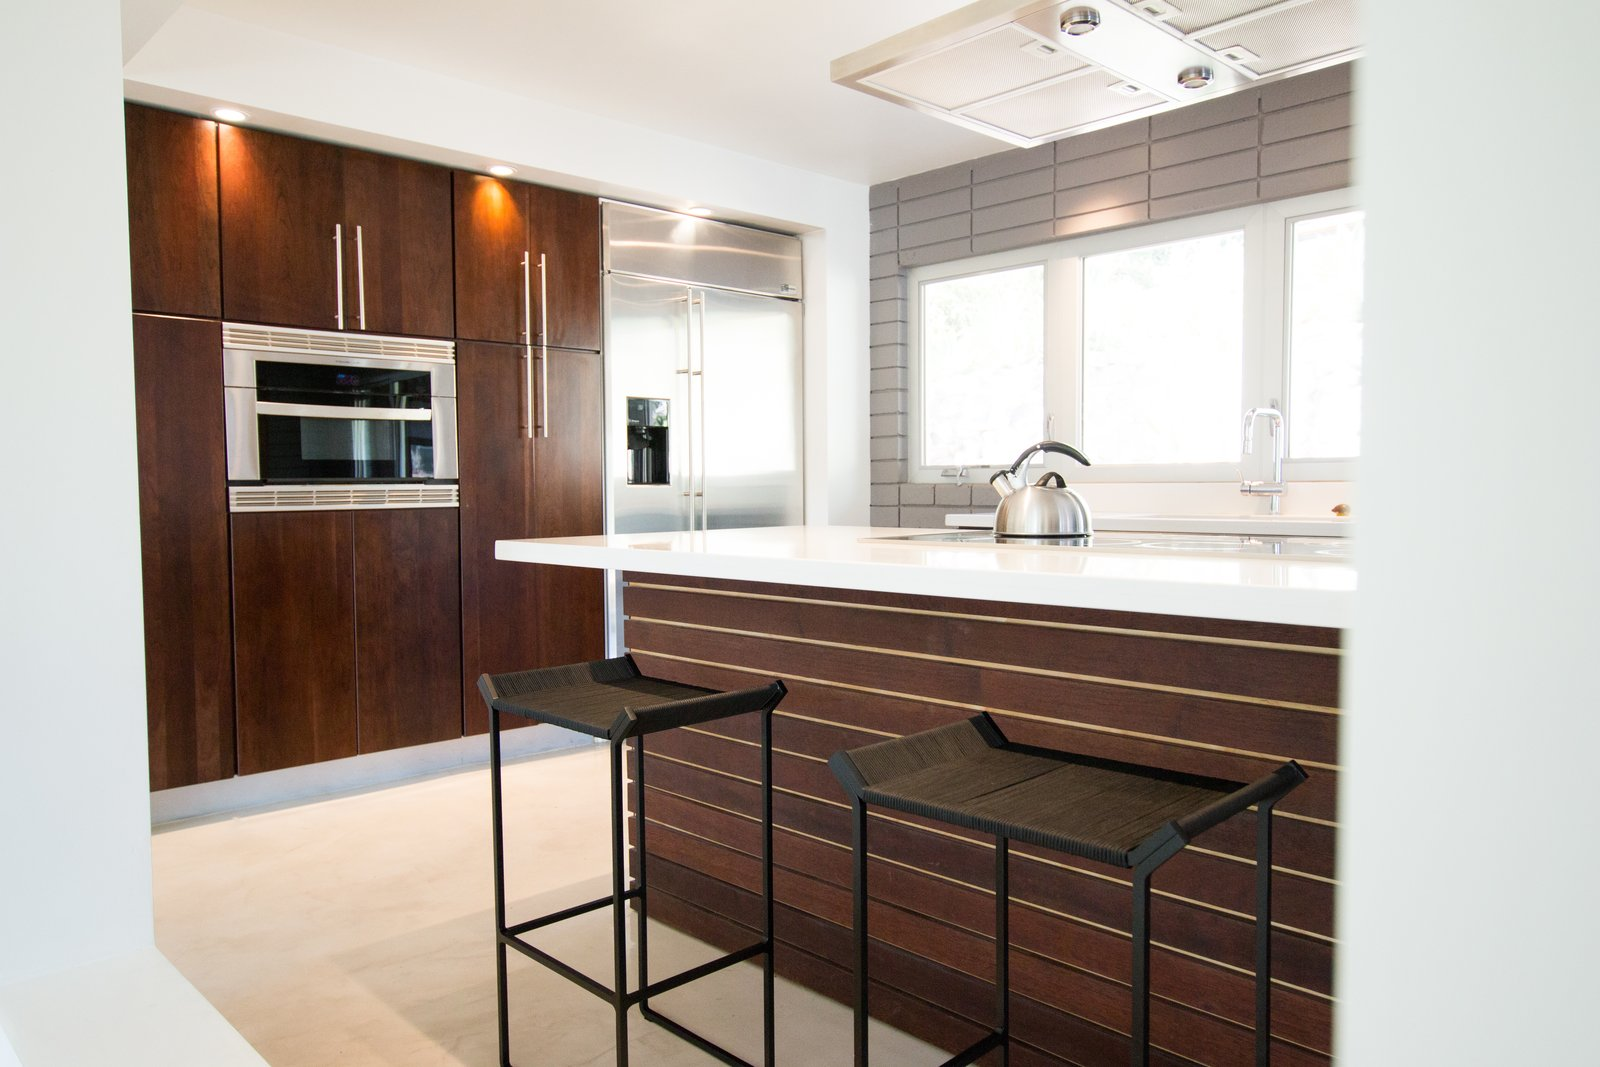 Custom Kitchen: Solid Cherry Casework, Quartz Countertops + Polished Concrete Floors  Edgewood by Christina Micklish